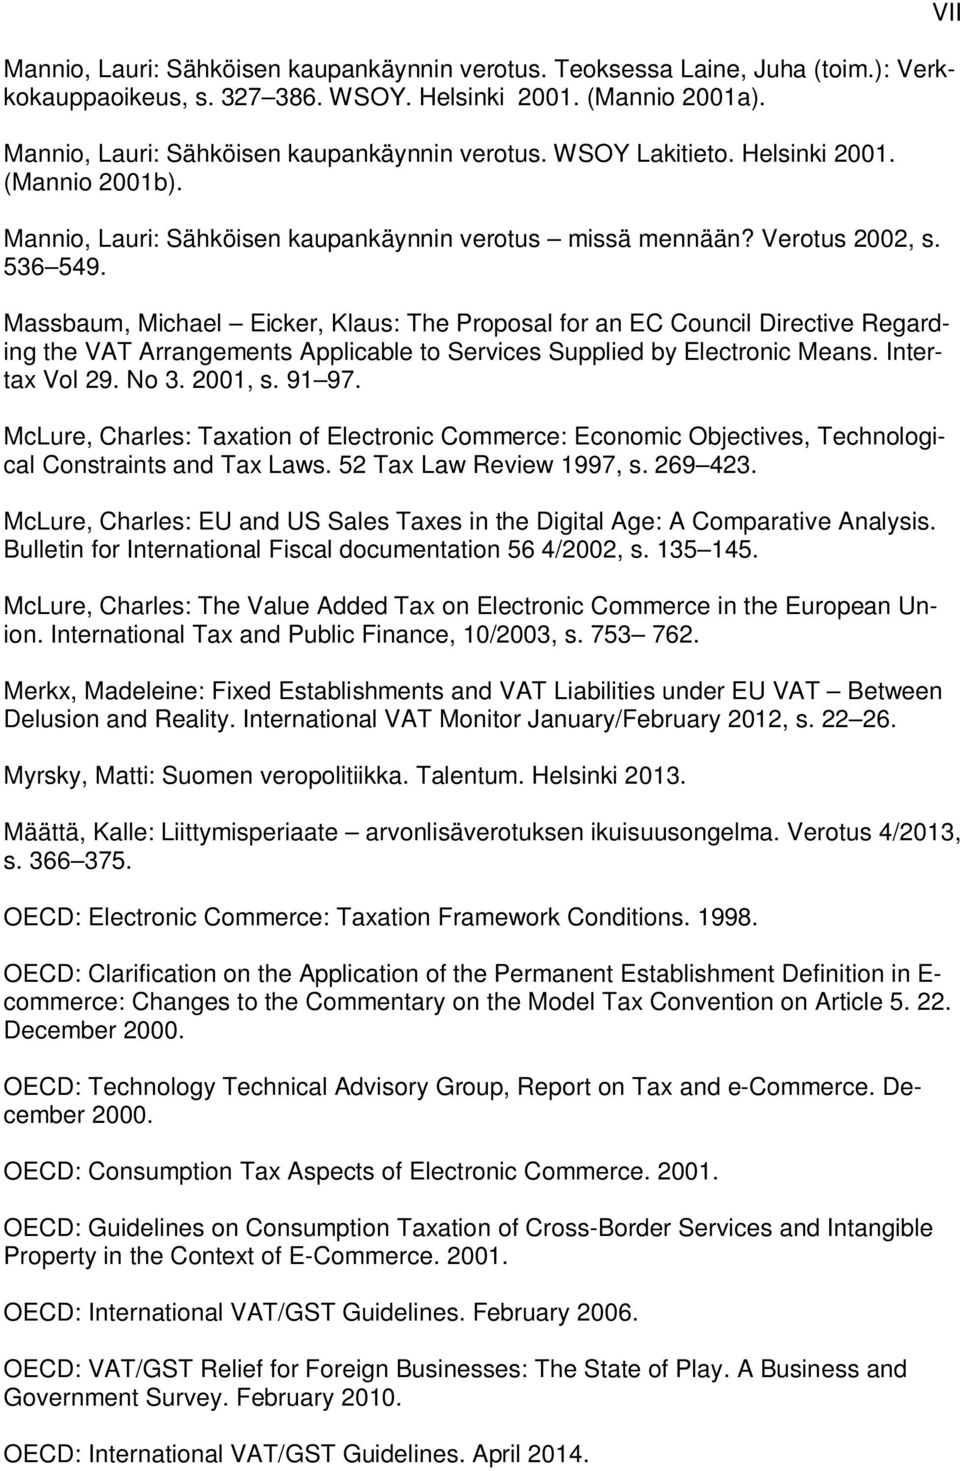 Massbaum, Michael Eicker, Klaus: The Proposal for an EC Council Directive Regarding the VAT Arrangements Applicable to Services Supplied by Electronic Means. Intertax Vol 29. No 3. 2001, s. 91 97.